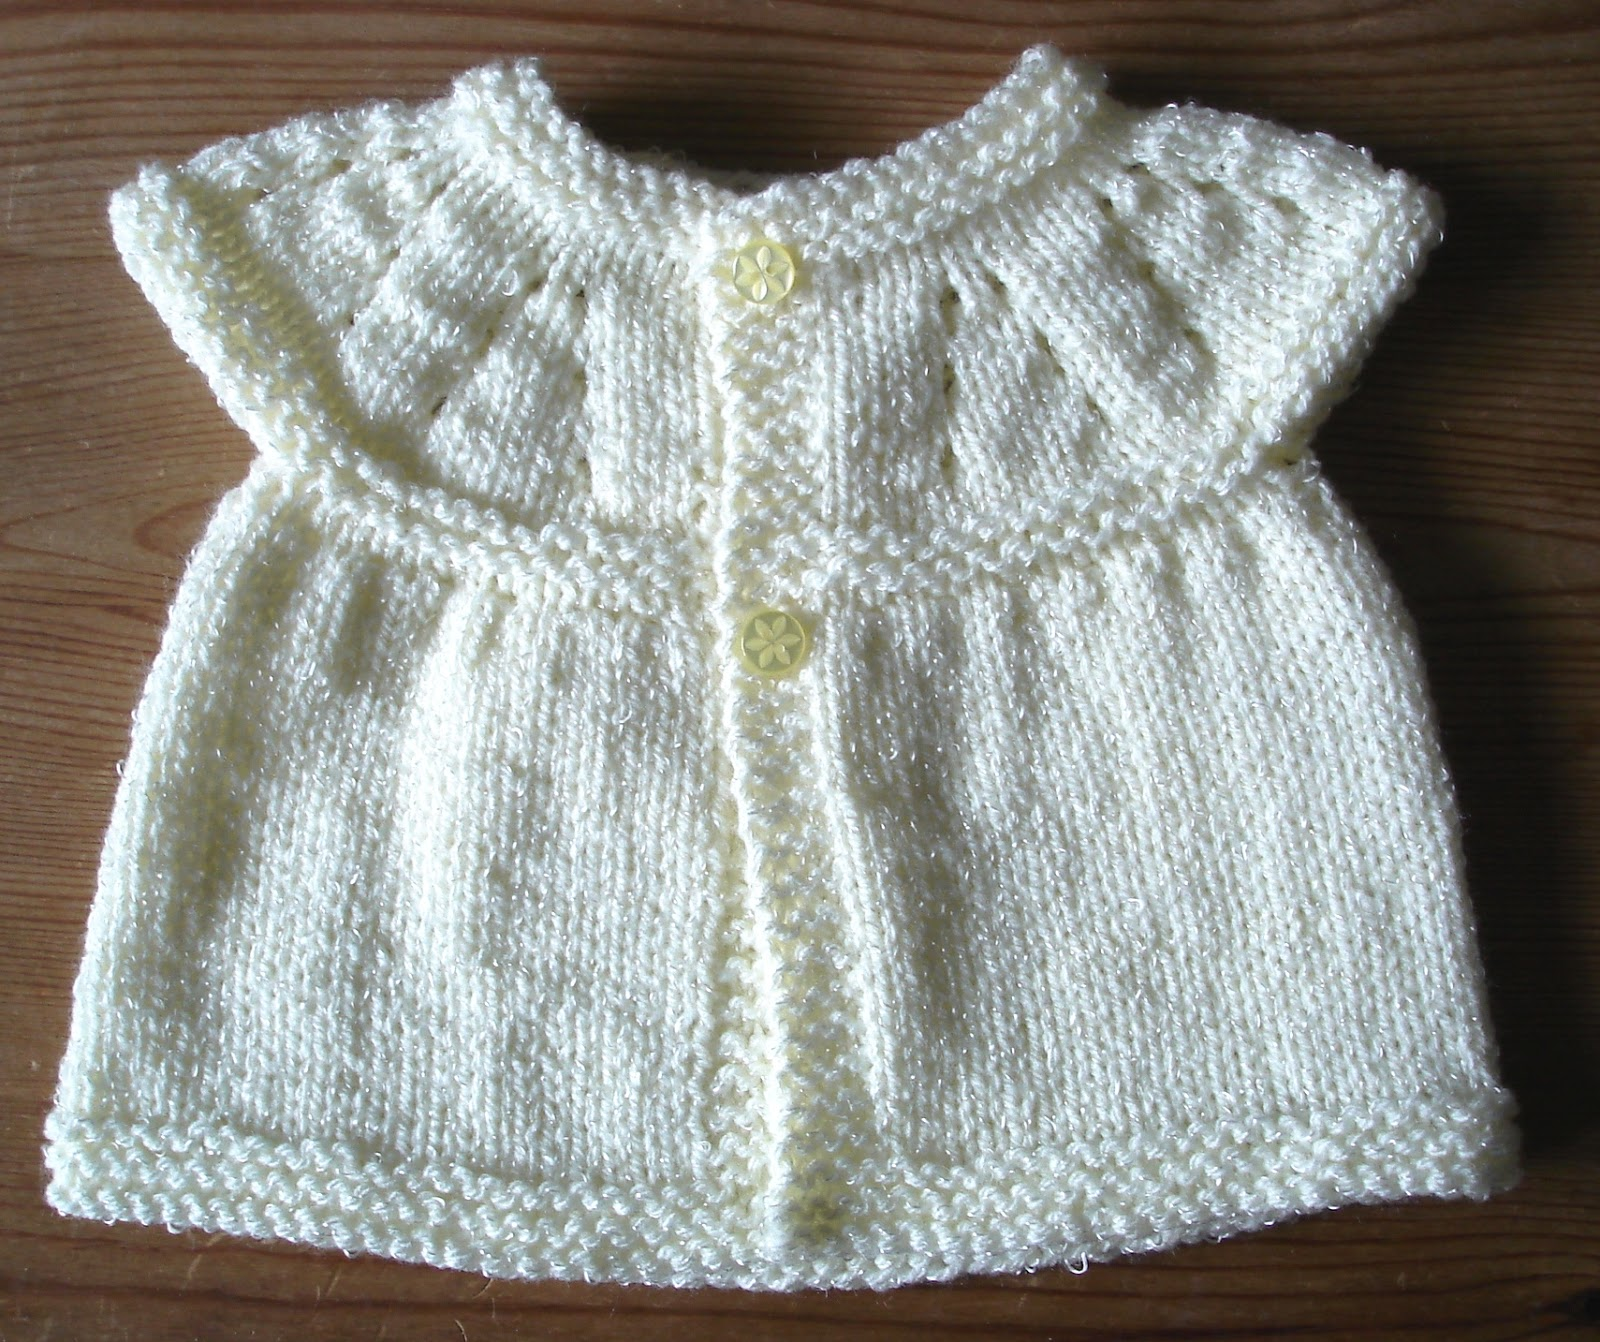 Knitting Patterns For Neonatal Babies : mariannas lazy daisy days: All-in-one Knitted Baby Tops